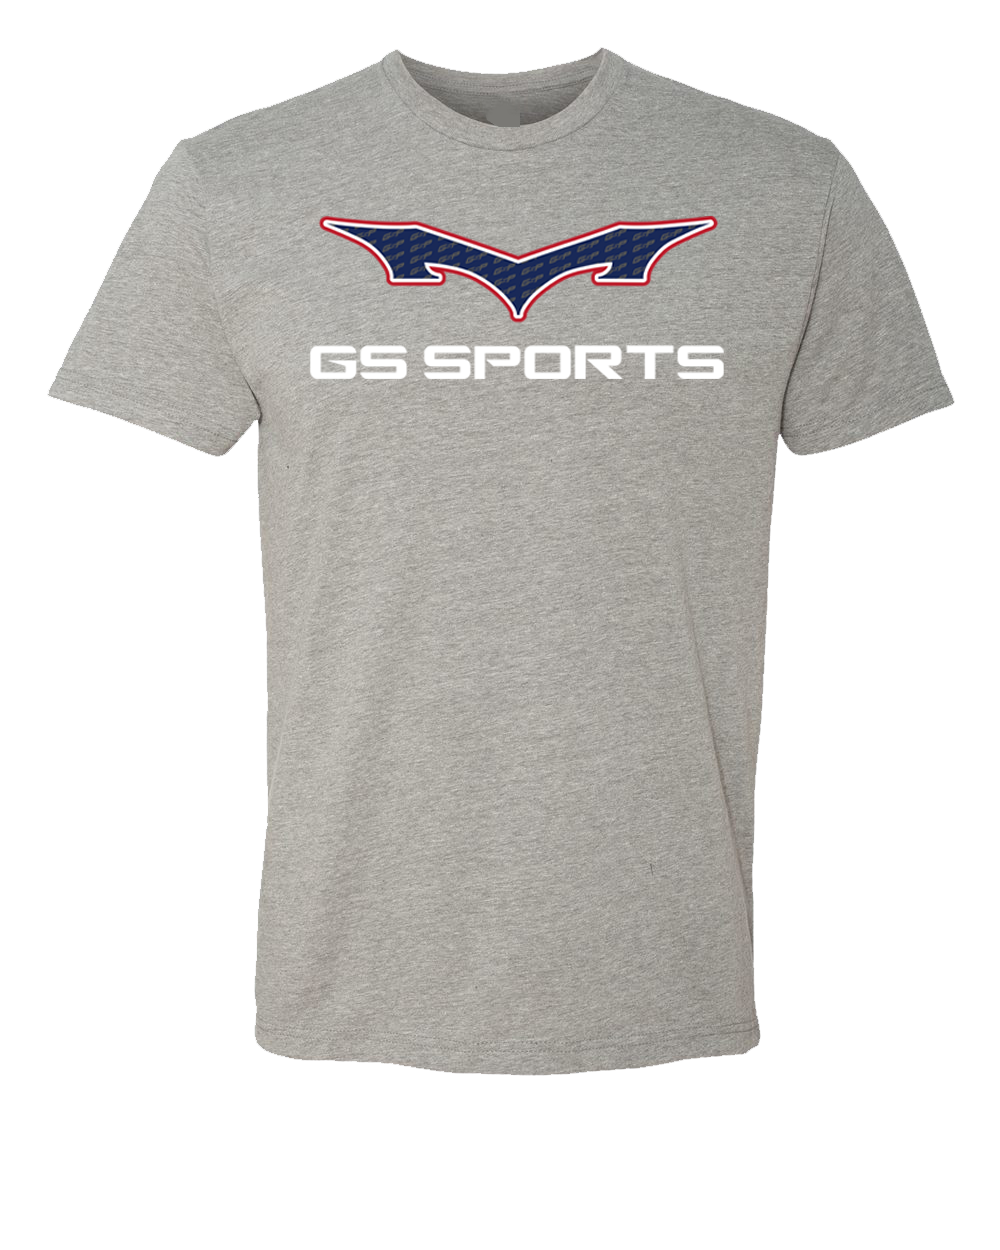 GS Sports / Monsta Athletics Tee